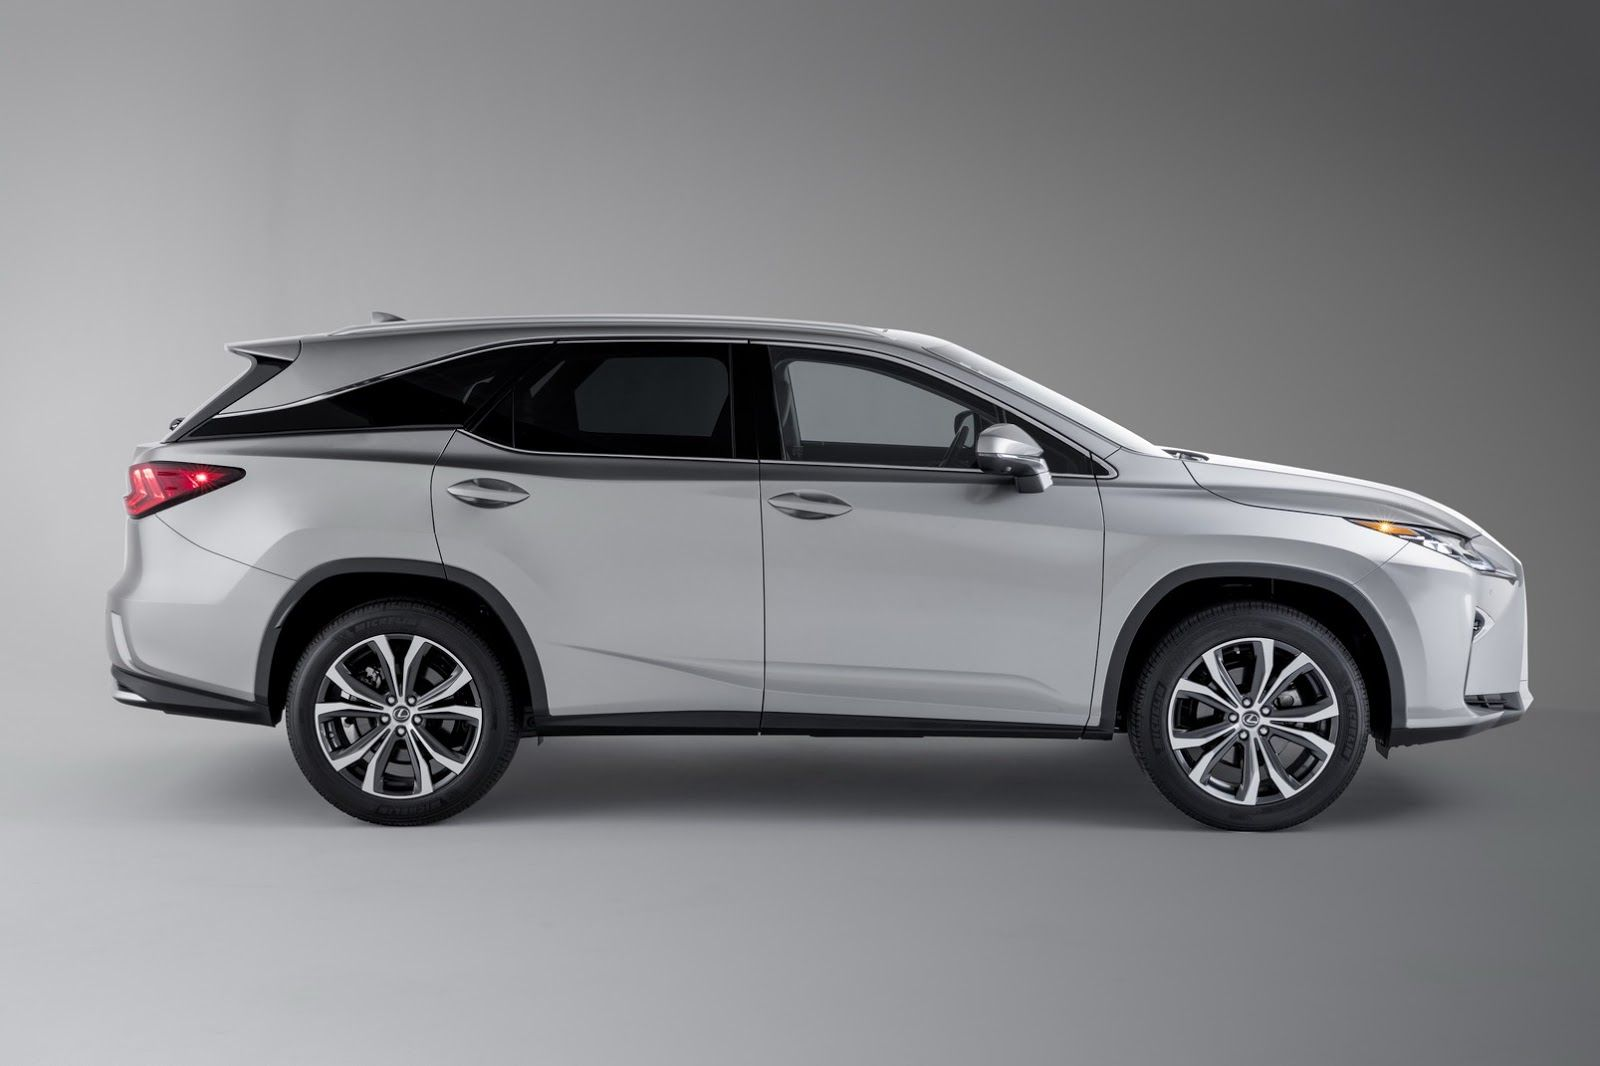 Lexus Rx 450hl Priced From 50 620 Deliveries Start In April Carscoops Lexus 3rd Row Suv Suv Cars